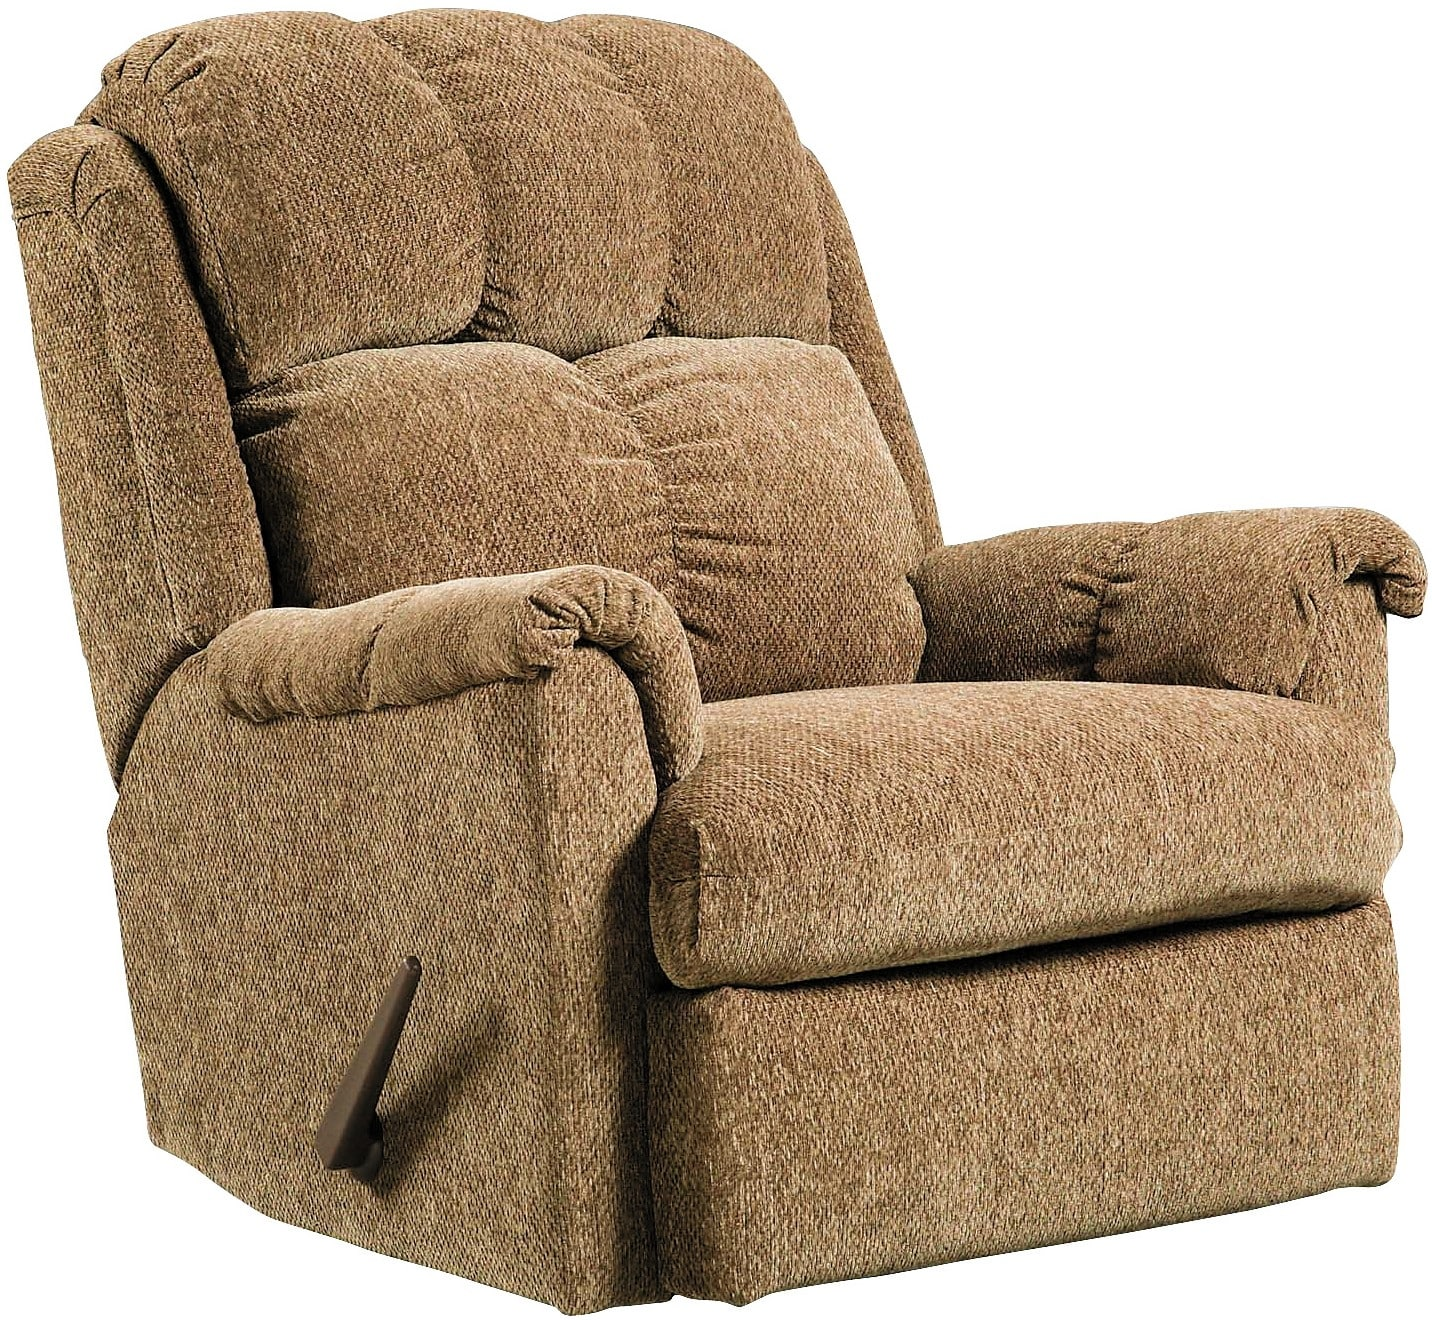 rocking recliner chairs workpro commercial mesh back executive chair brown chenille rocker the brick